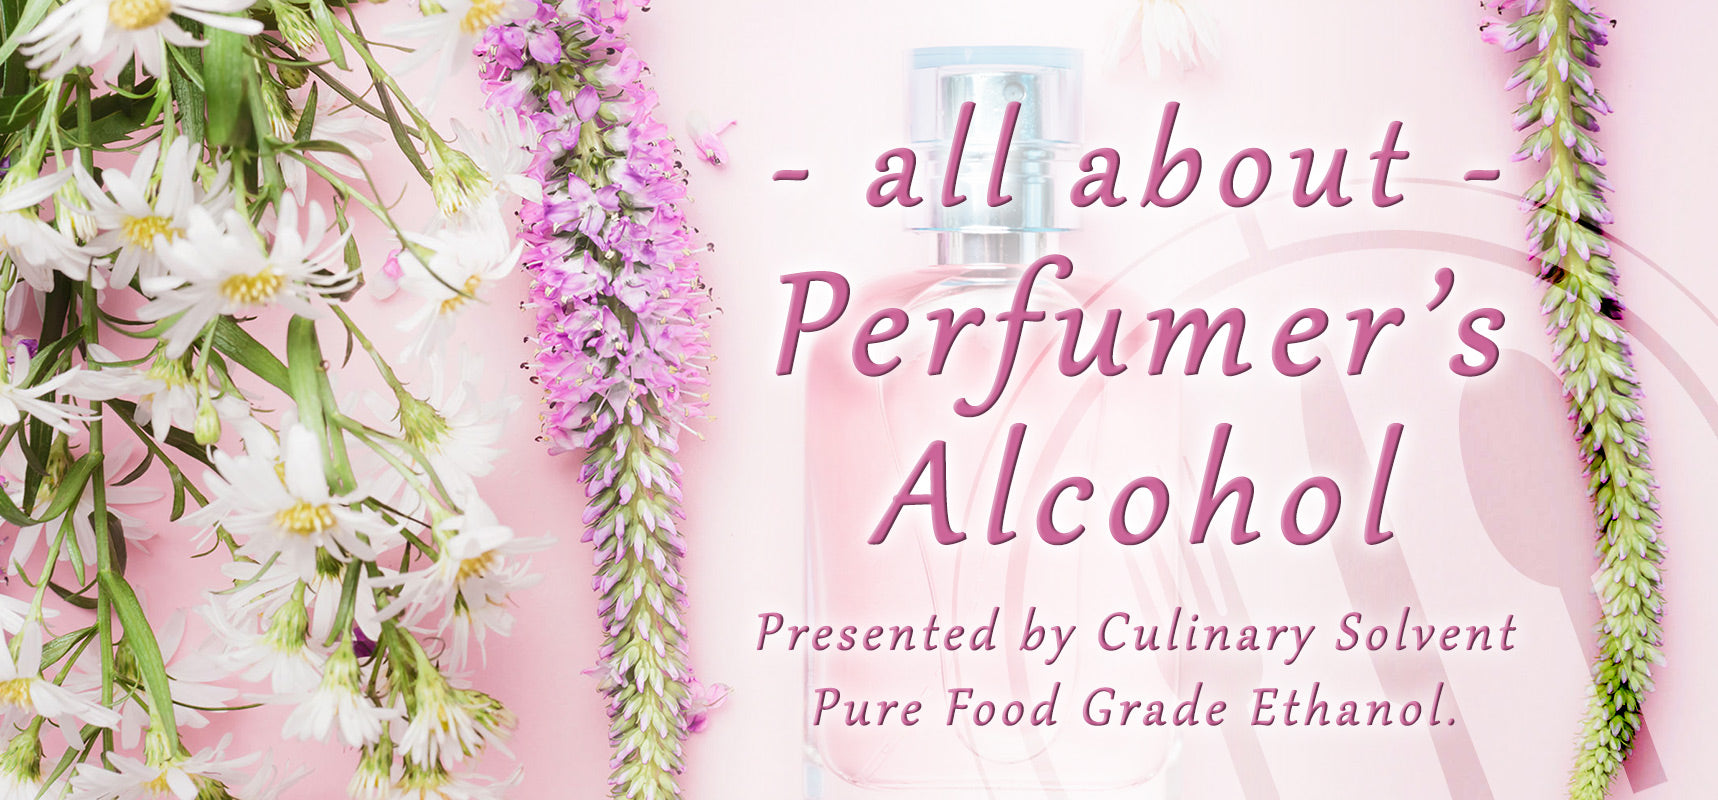 About Perfumers Alcohol, Where to buy alcohol for perfumery - Culinary Solvent distilled in Maine